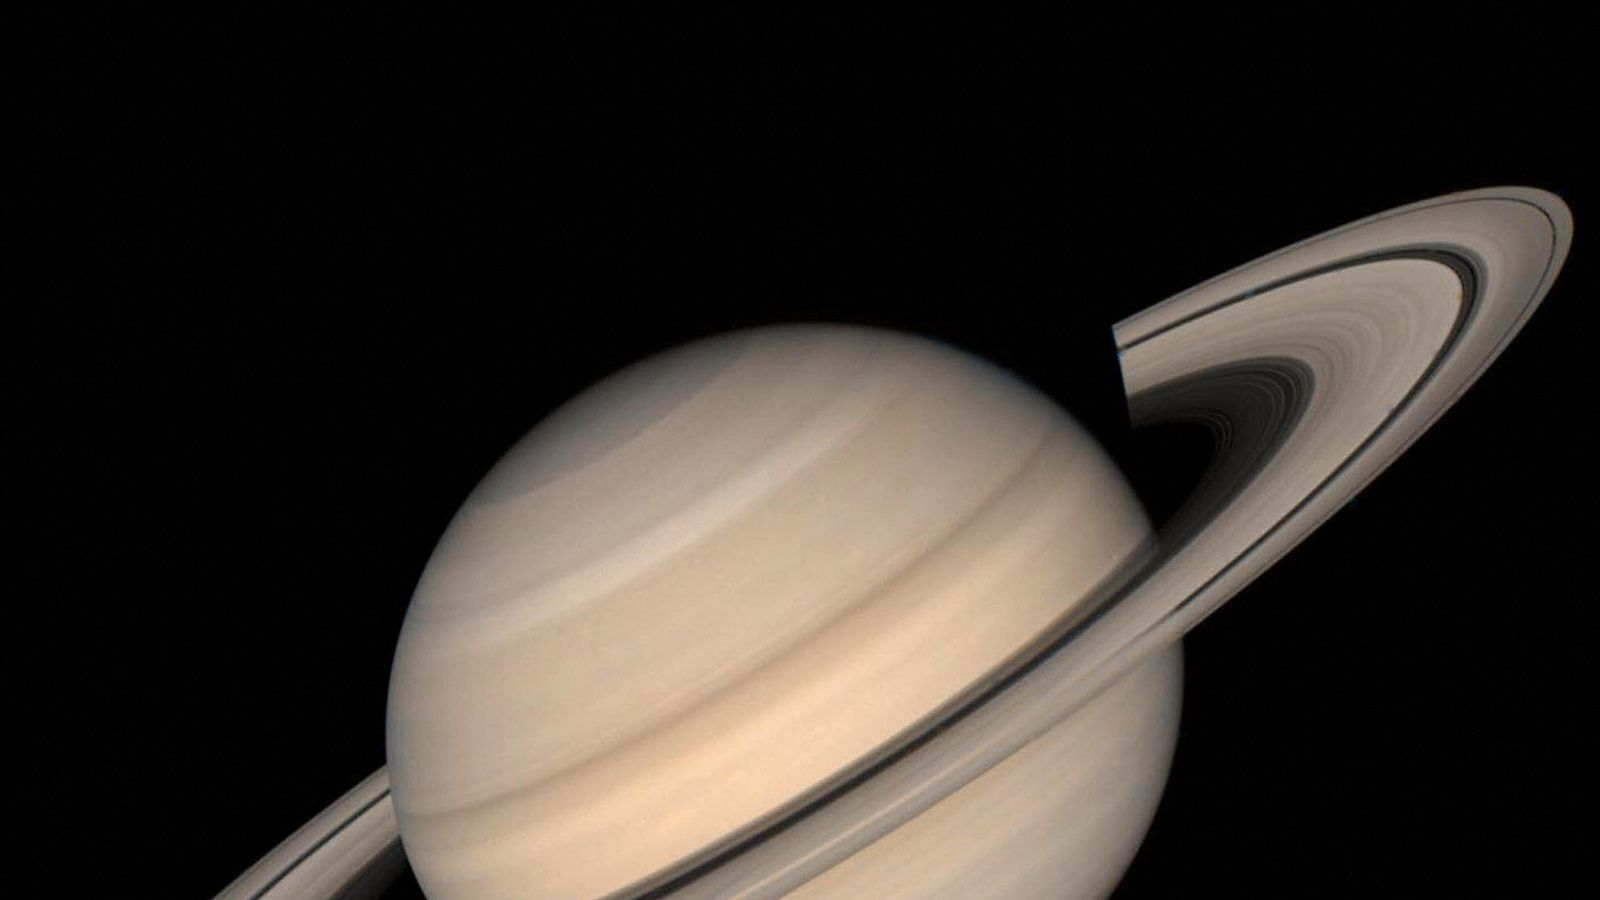 Saturn Losing Rings At Worst Case Scenario Rate